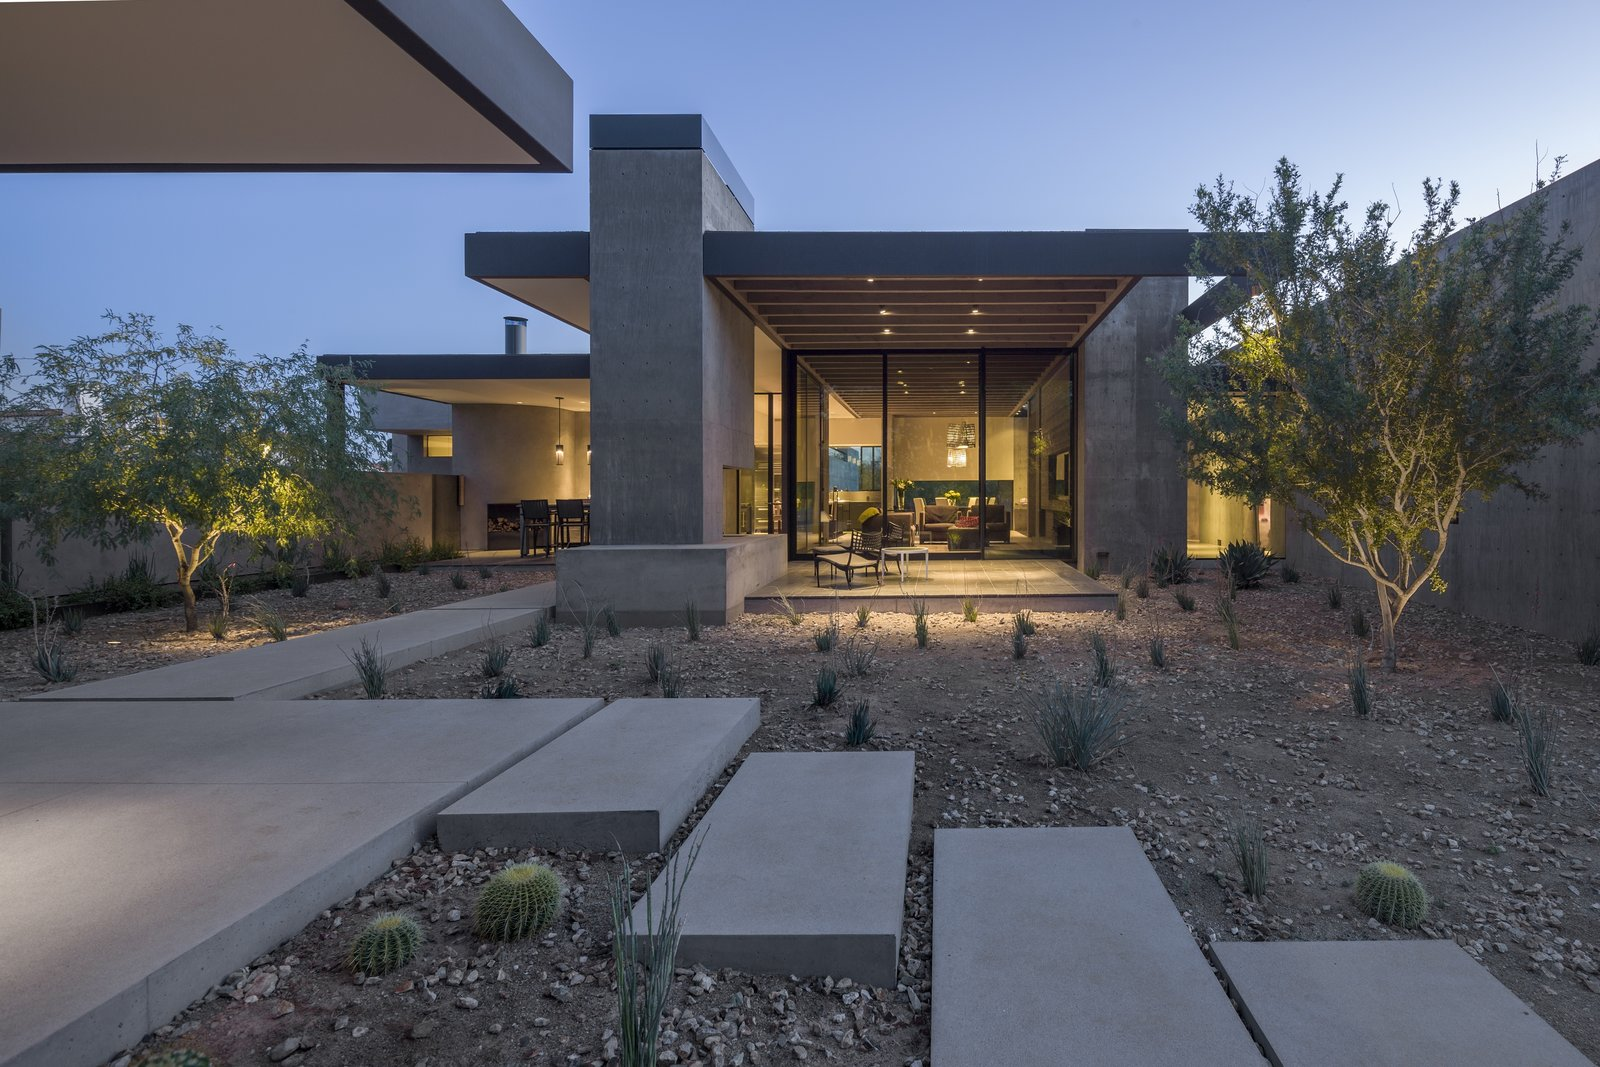 Tagged: Outdoor, Desert, and Concrete Patio, Porch, Deck. DLL 59 by TENNEN   STUDIO